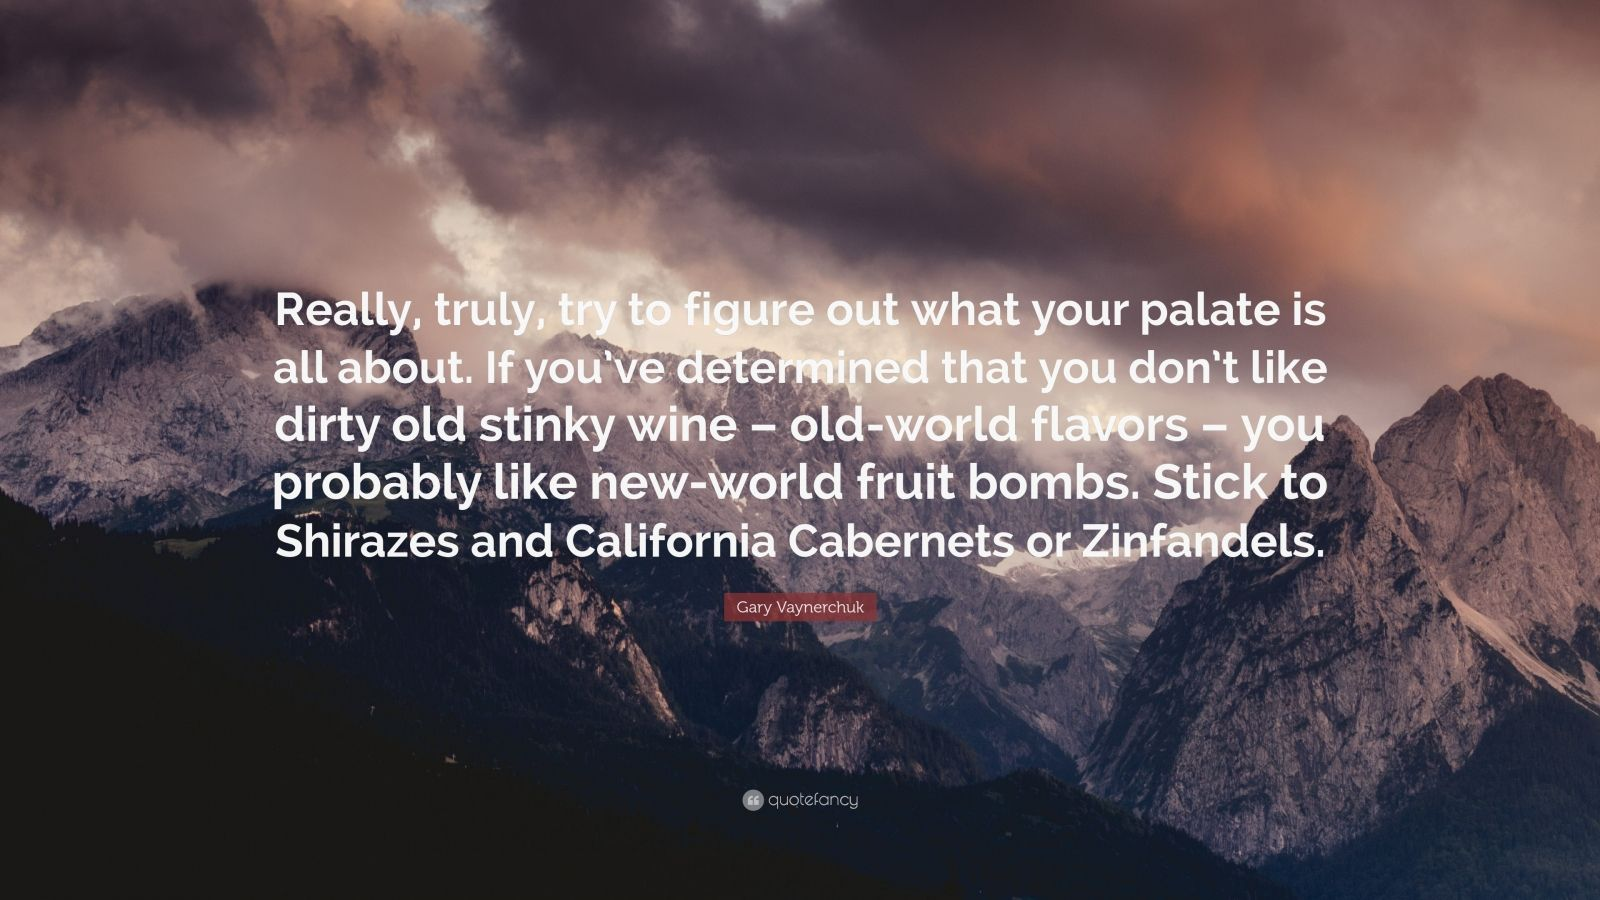 """Gary Vaynerchuk Quote: """"Really, truly, try to figure out what your palate is all about. If you've determined that you don't like dirty old stinky wine – old-world flavors – you probably like new-world fruit bombs. Stick to Shirazes and California Cabernets or Zinfandels."""""""